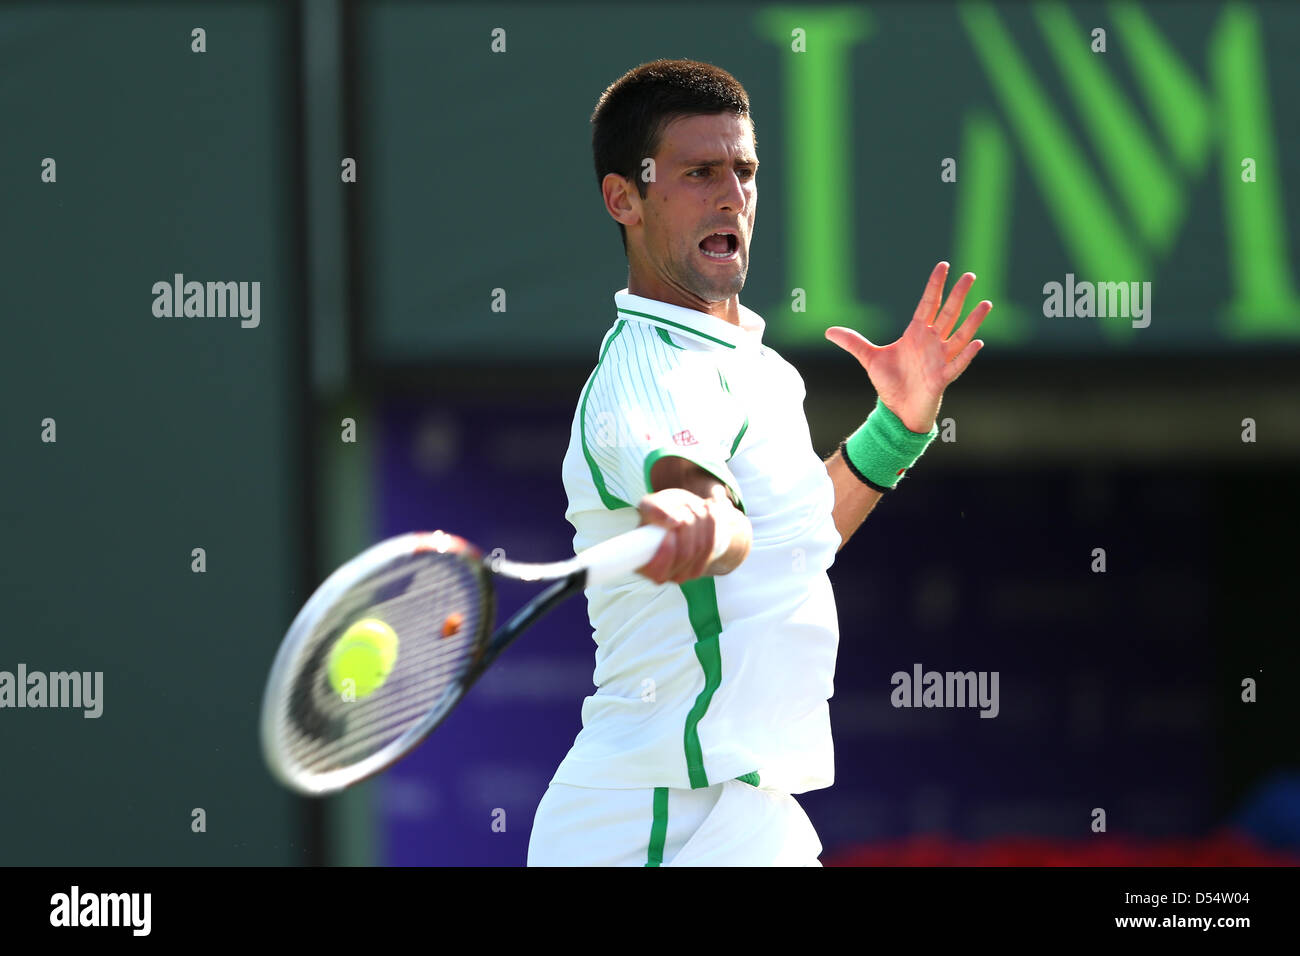 Miami, Florida, USA. 24th March 2013. Novak Djokovic of Serbia in action at the Sony Open 2013. Credit:  Mauricio - Stock Image